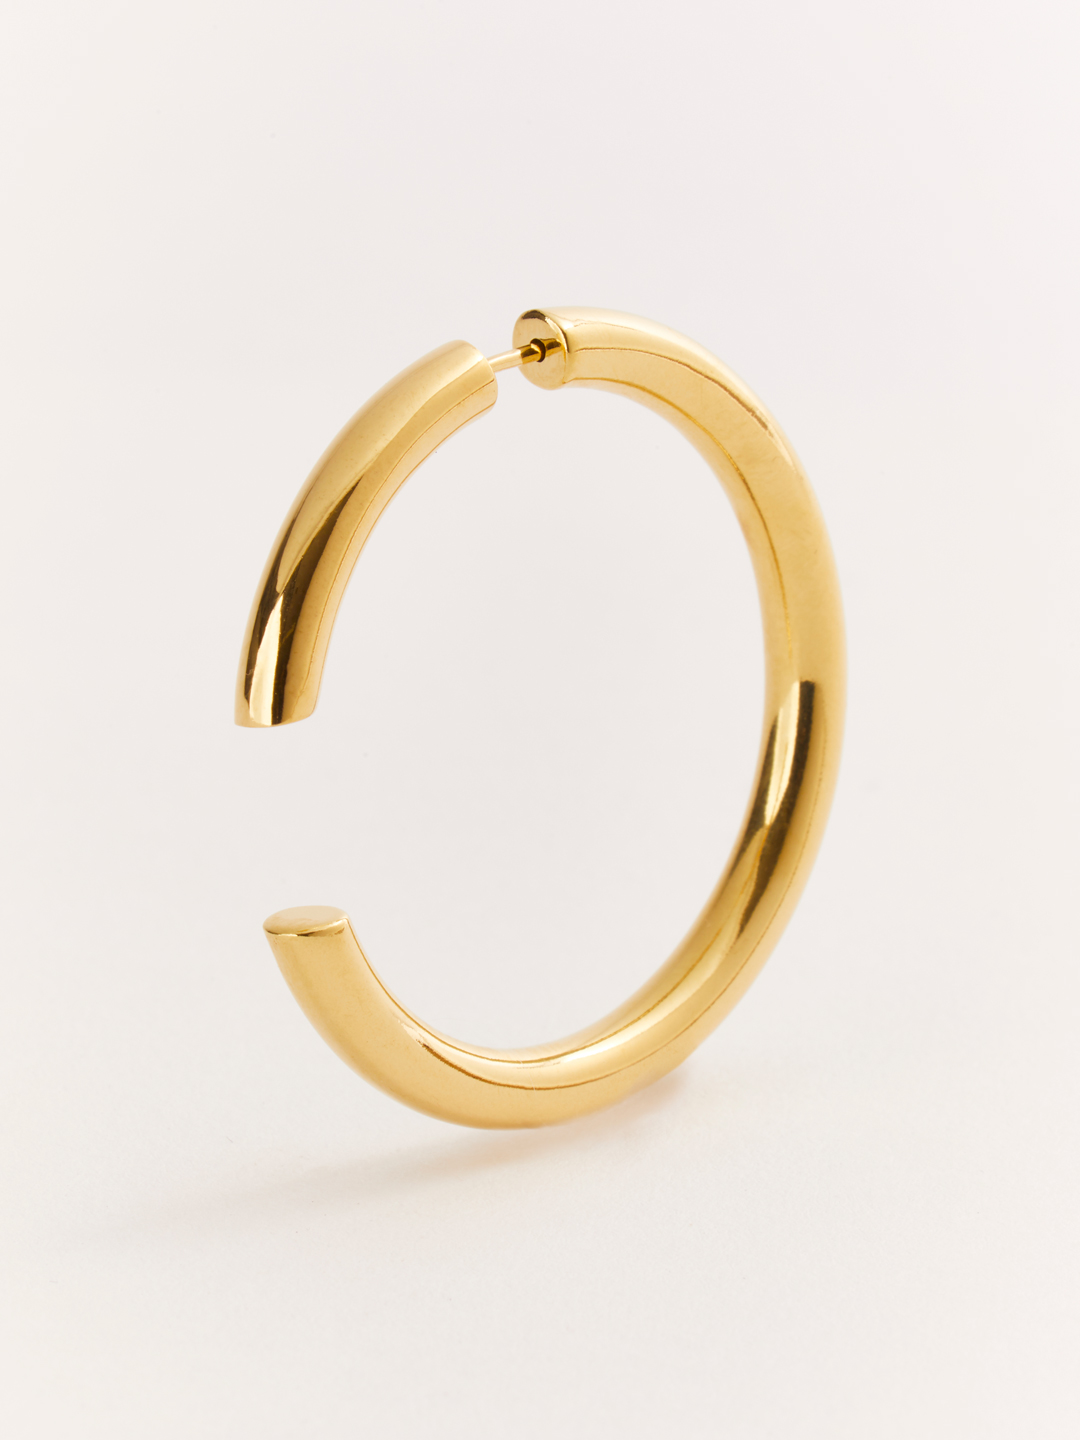 Disrupted 40 Pierced Earring - Gold High Polish